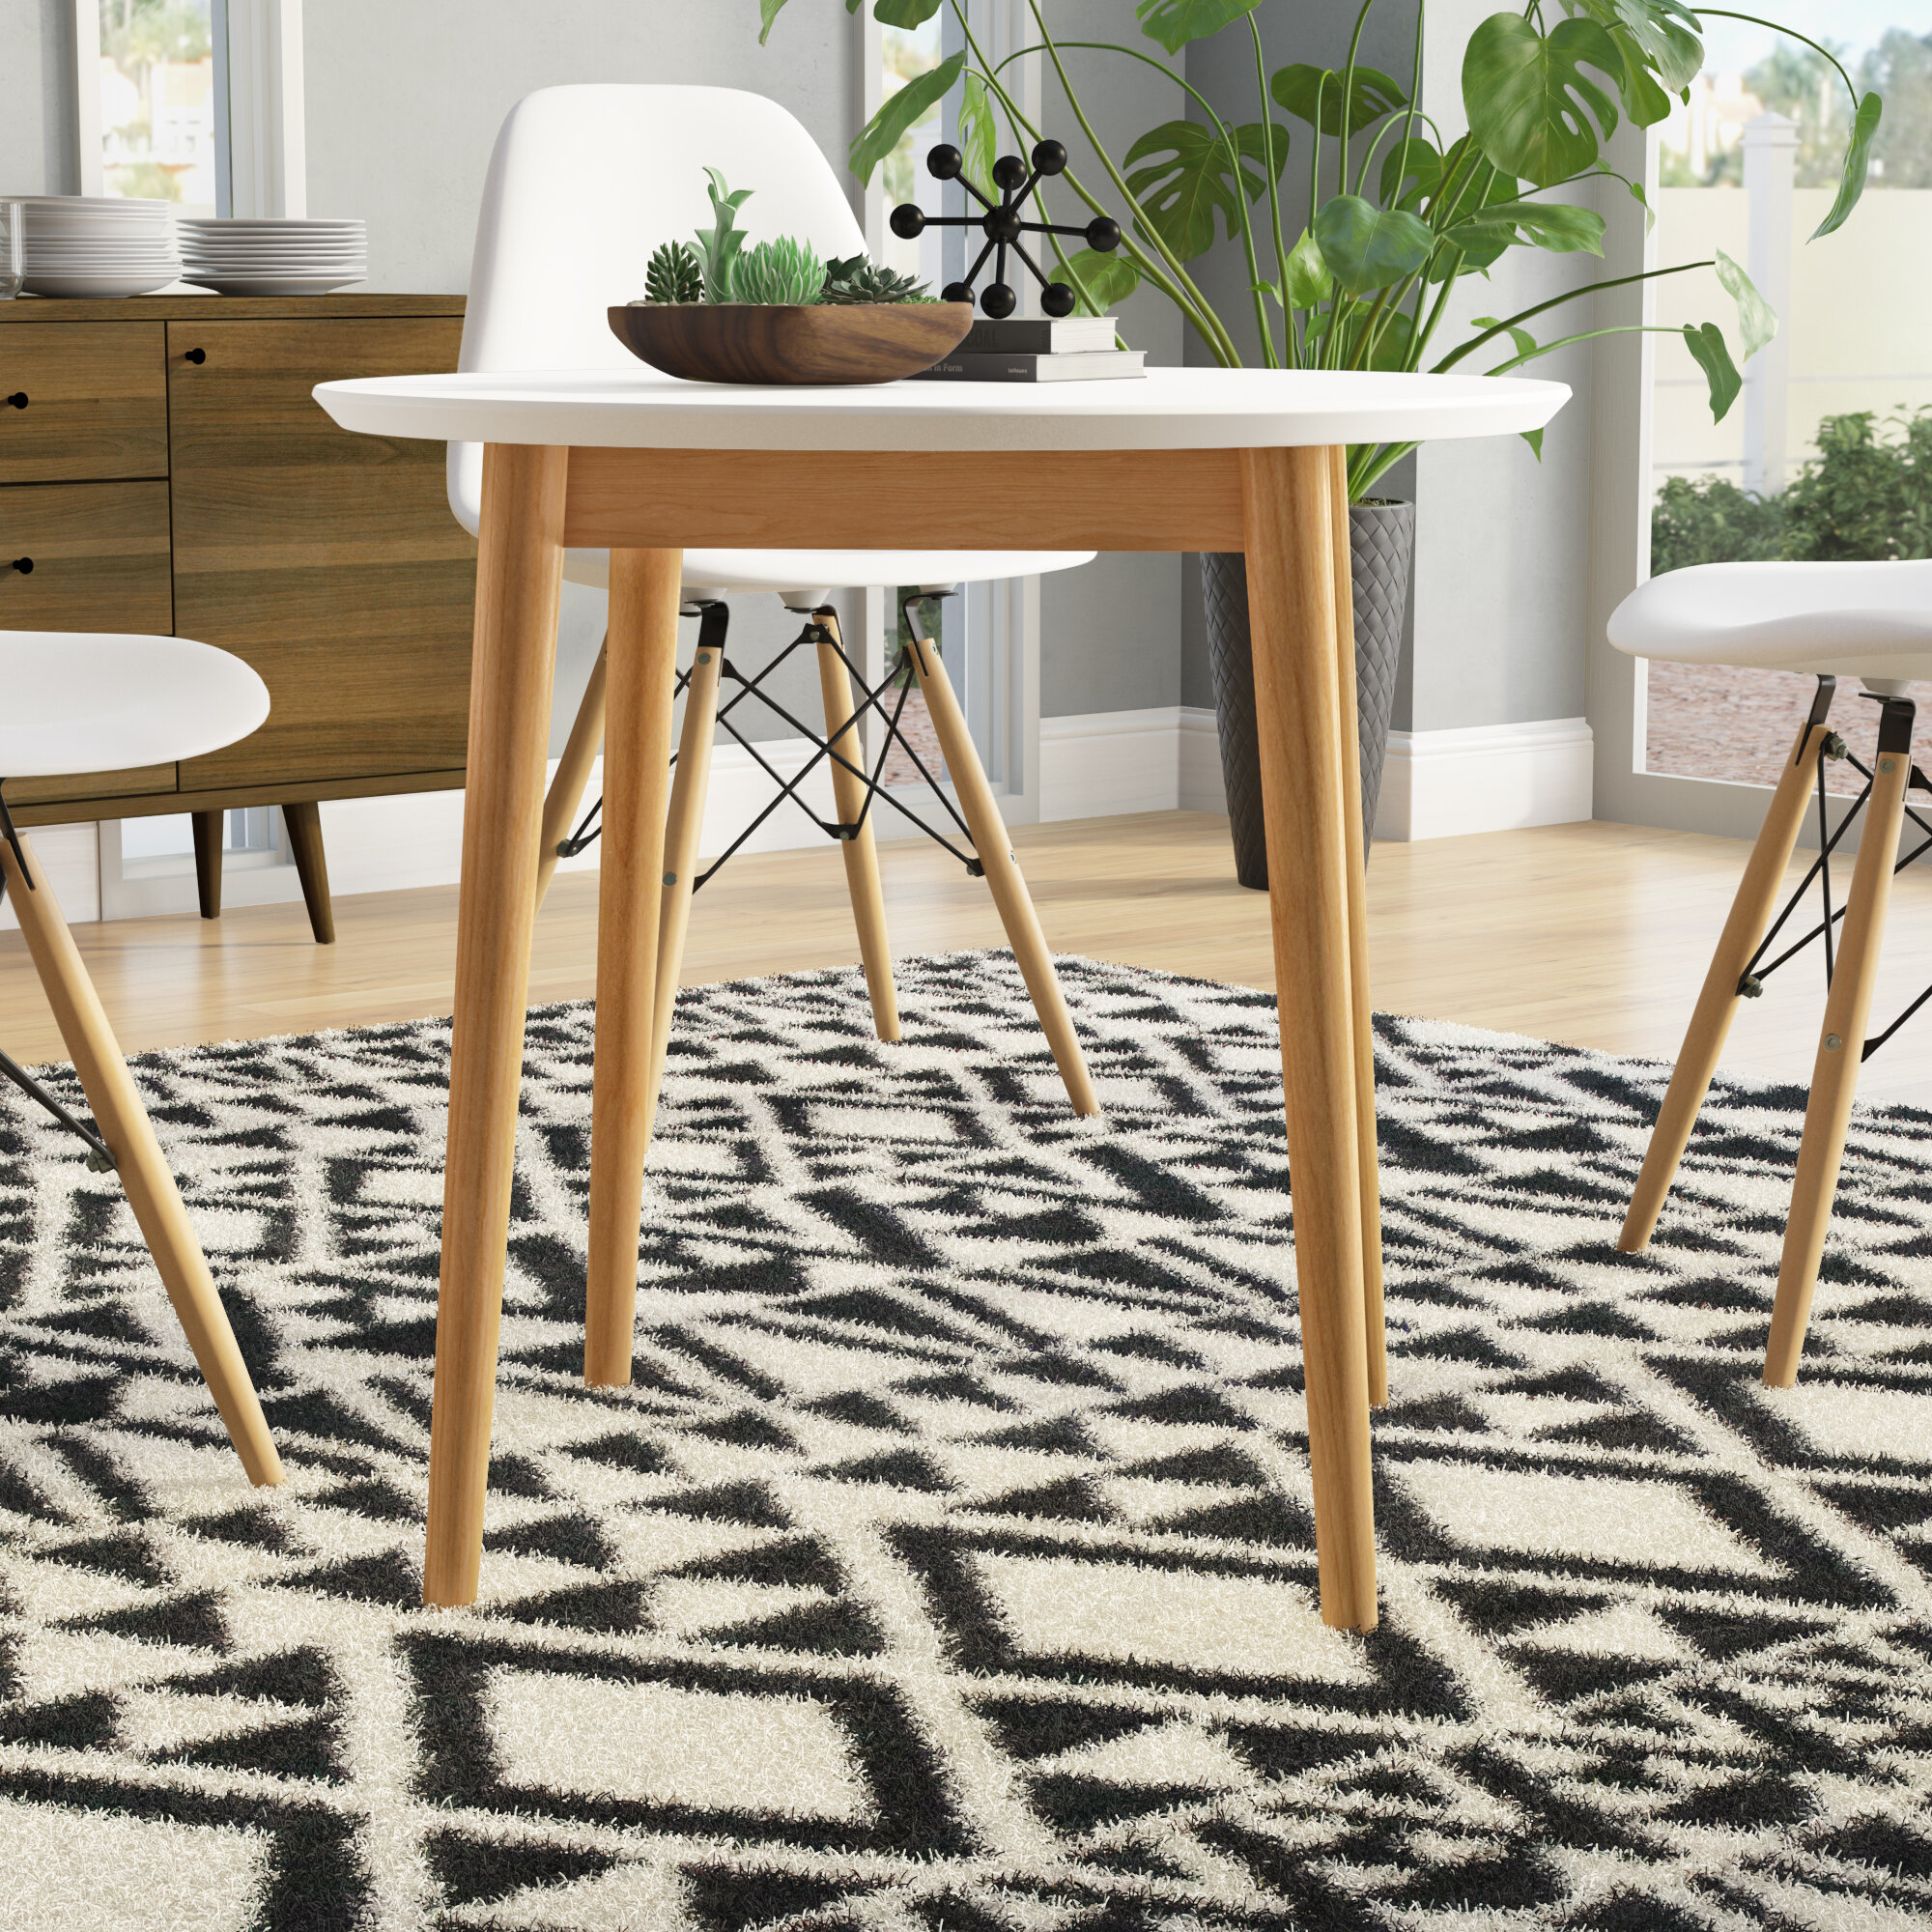 Small Round Dining Tables You Ll Love In 2021 Wayfair